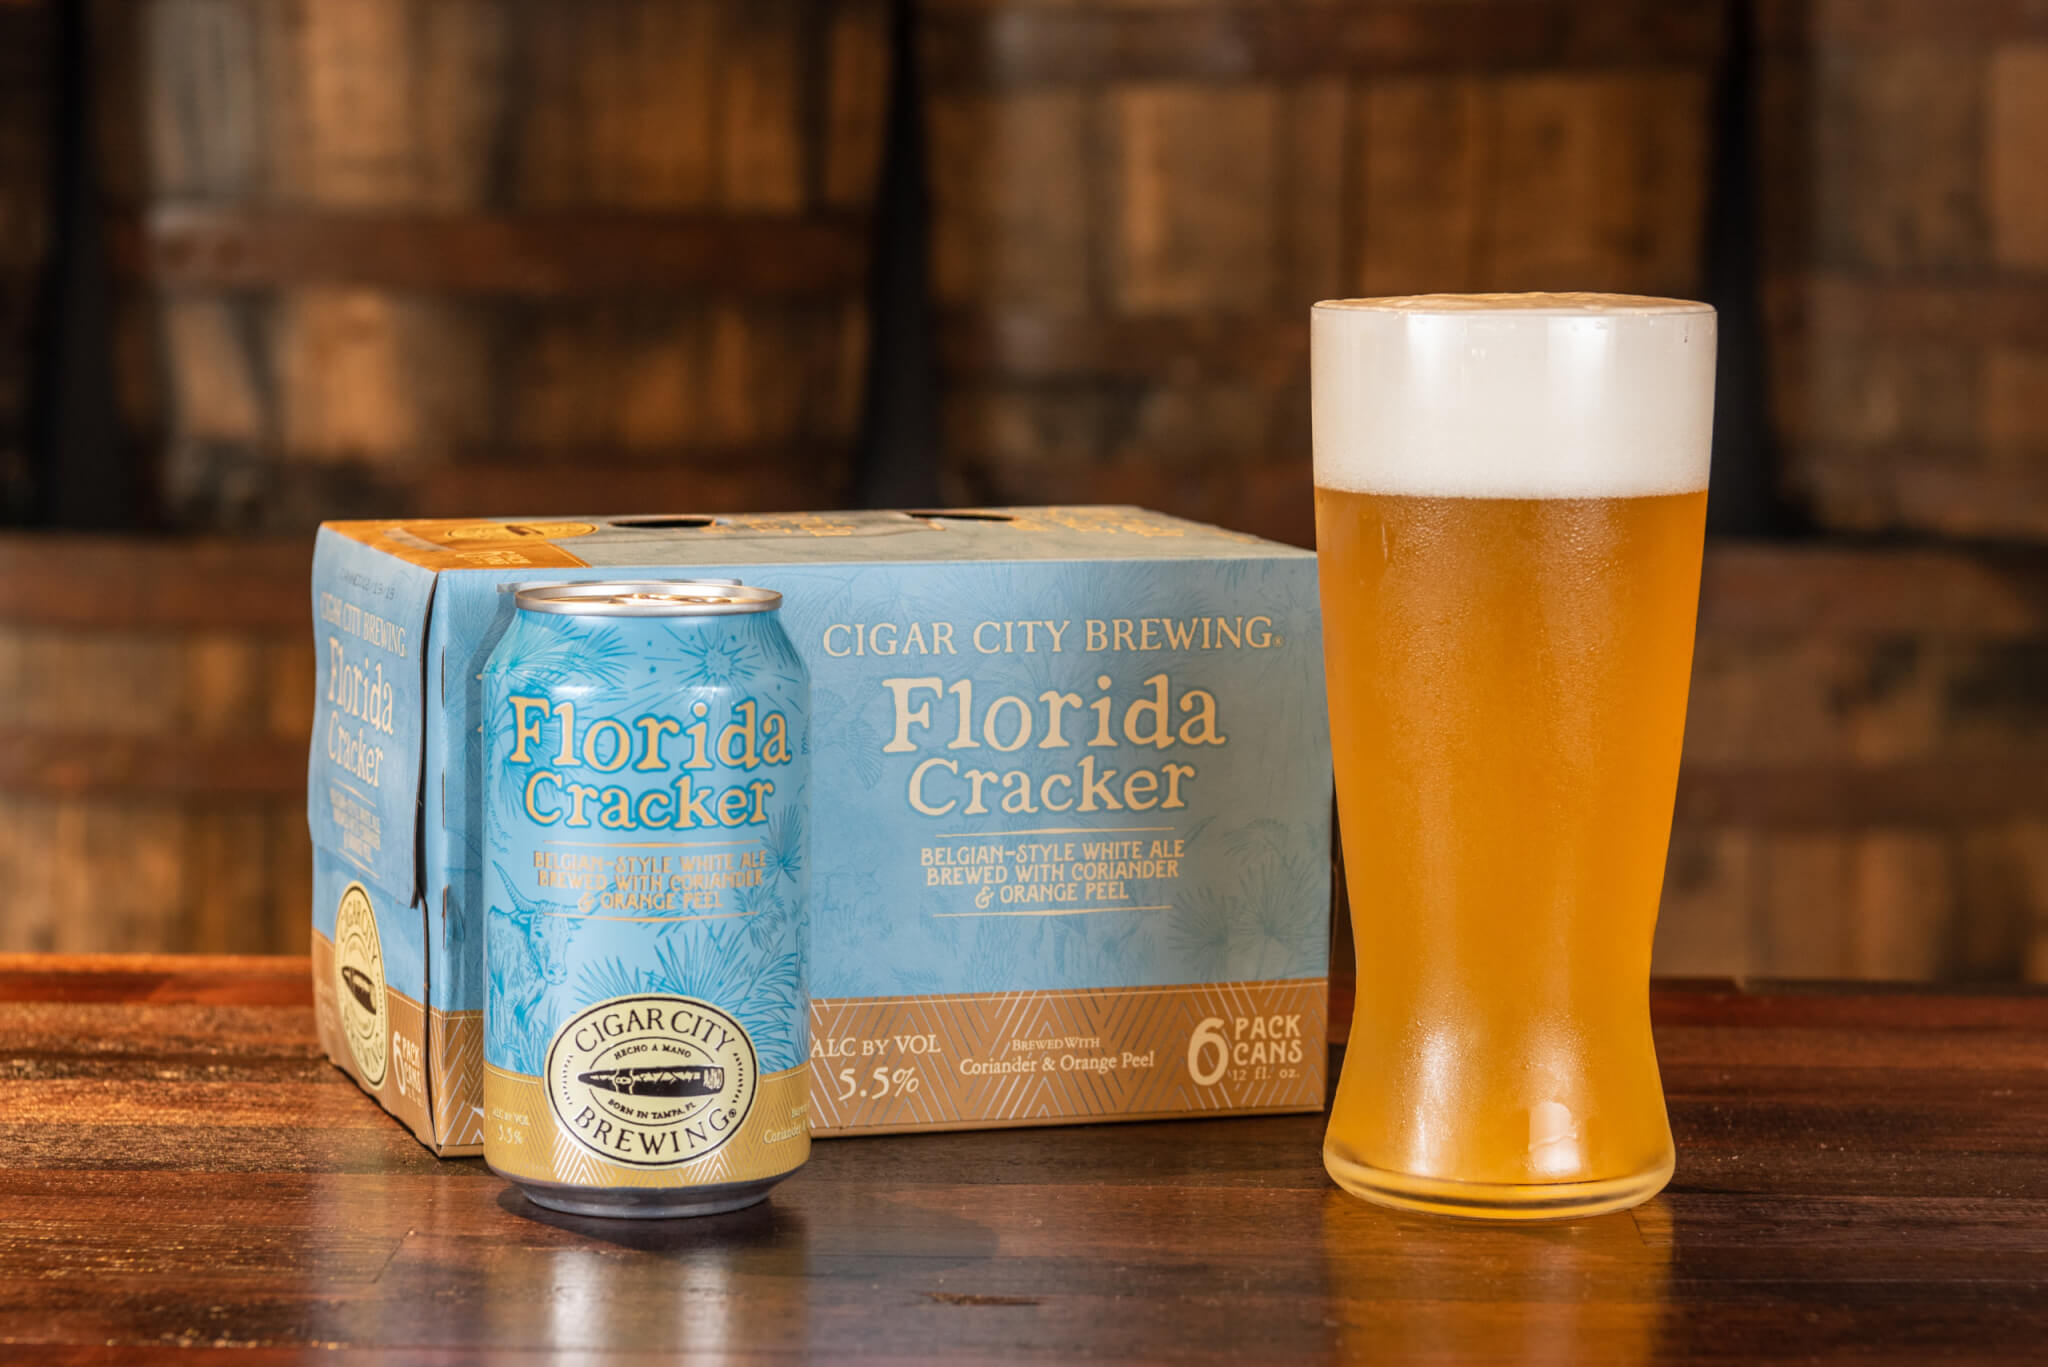 7. Cigar City Florida Cracker